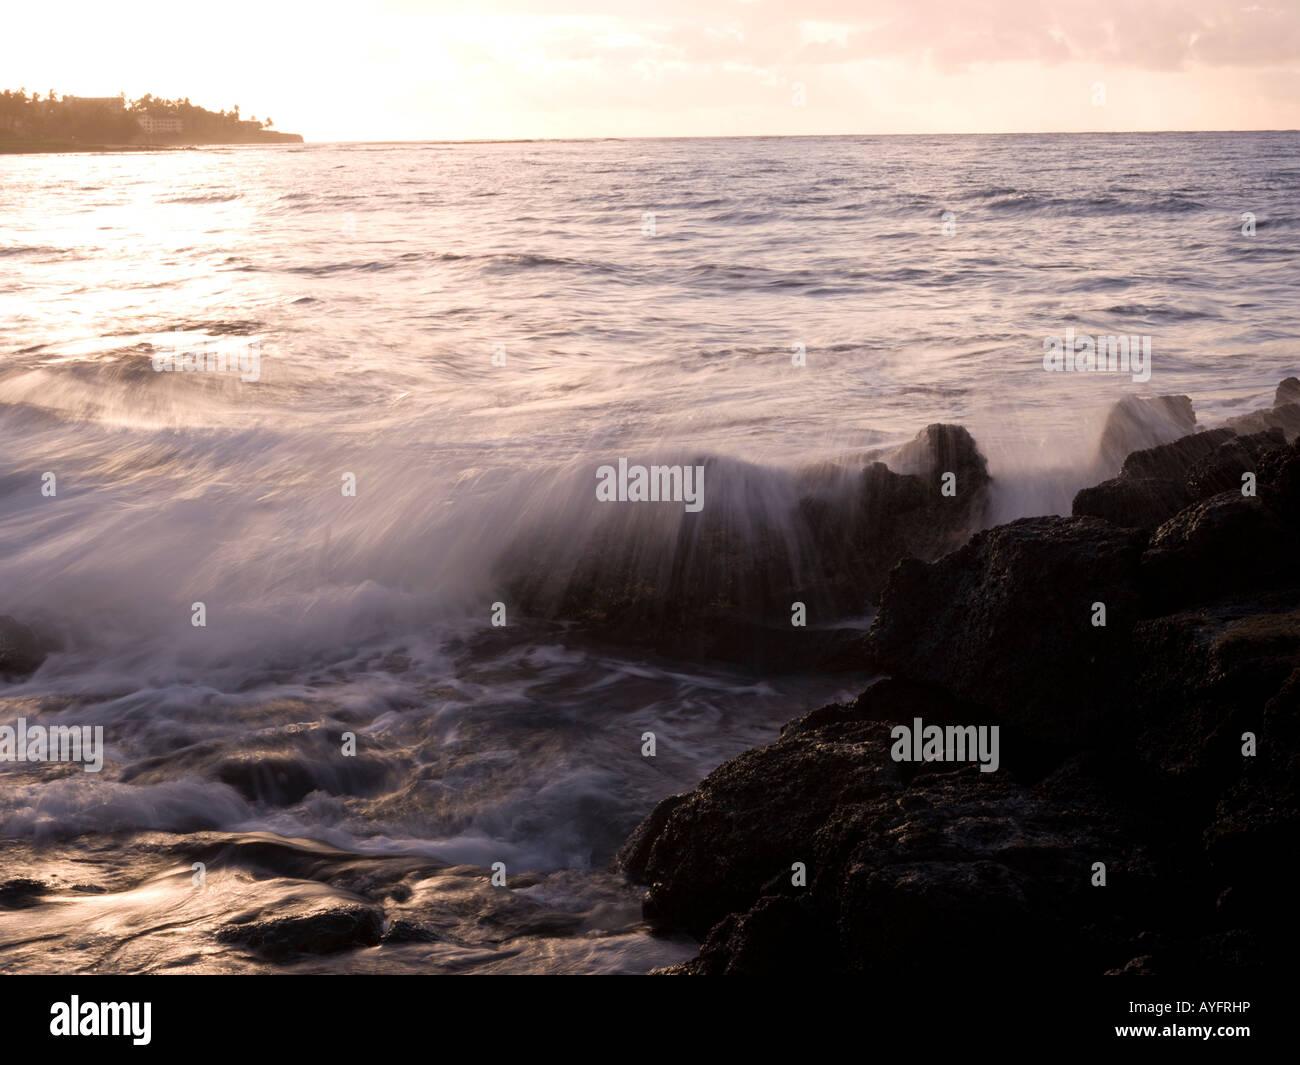 Kauai, Hawaii - Stock Image